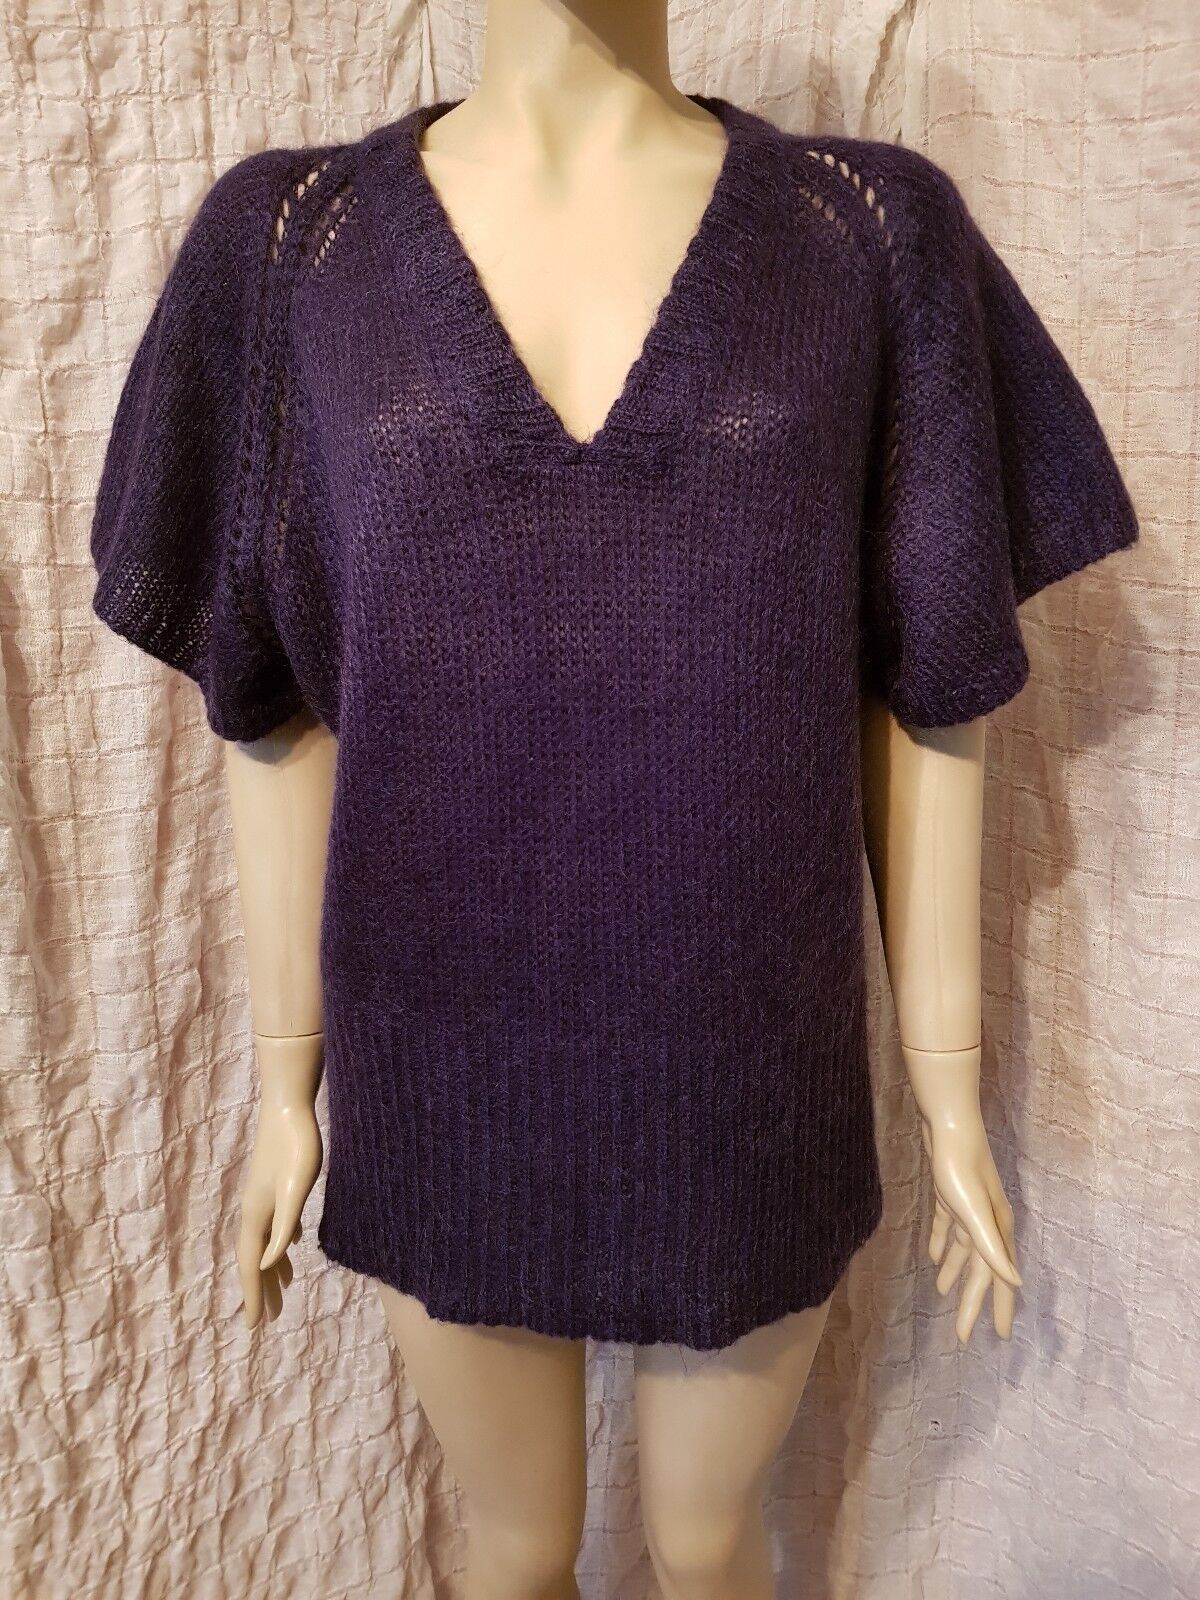 Isabel Marant kid mohair purple cap sleeve knitted top jumper size 2